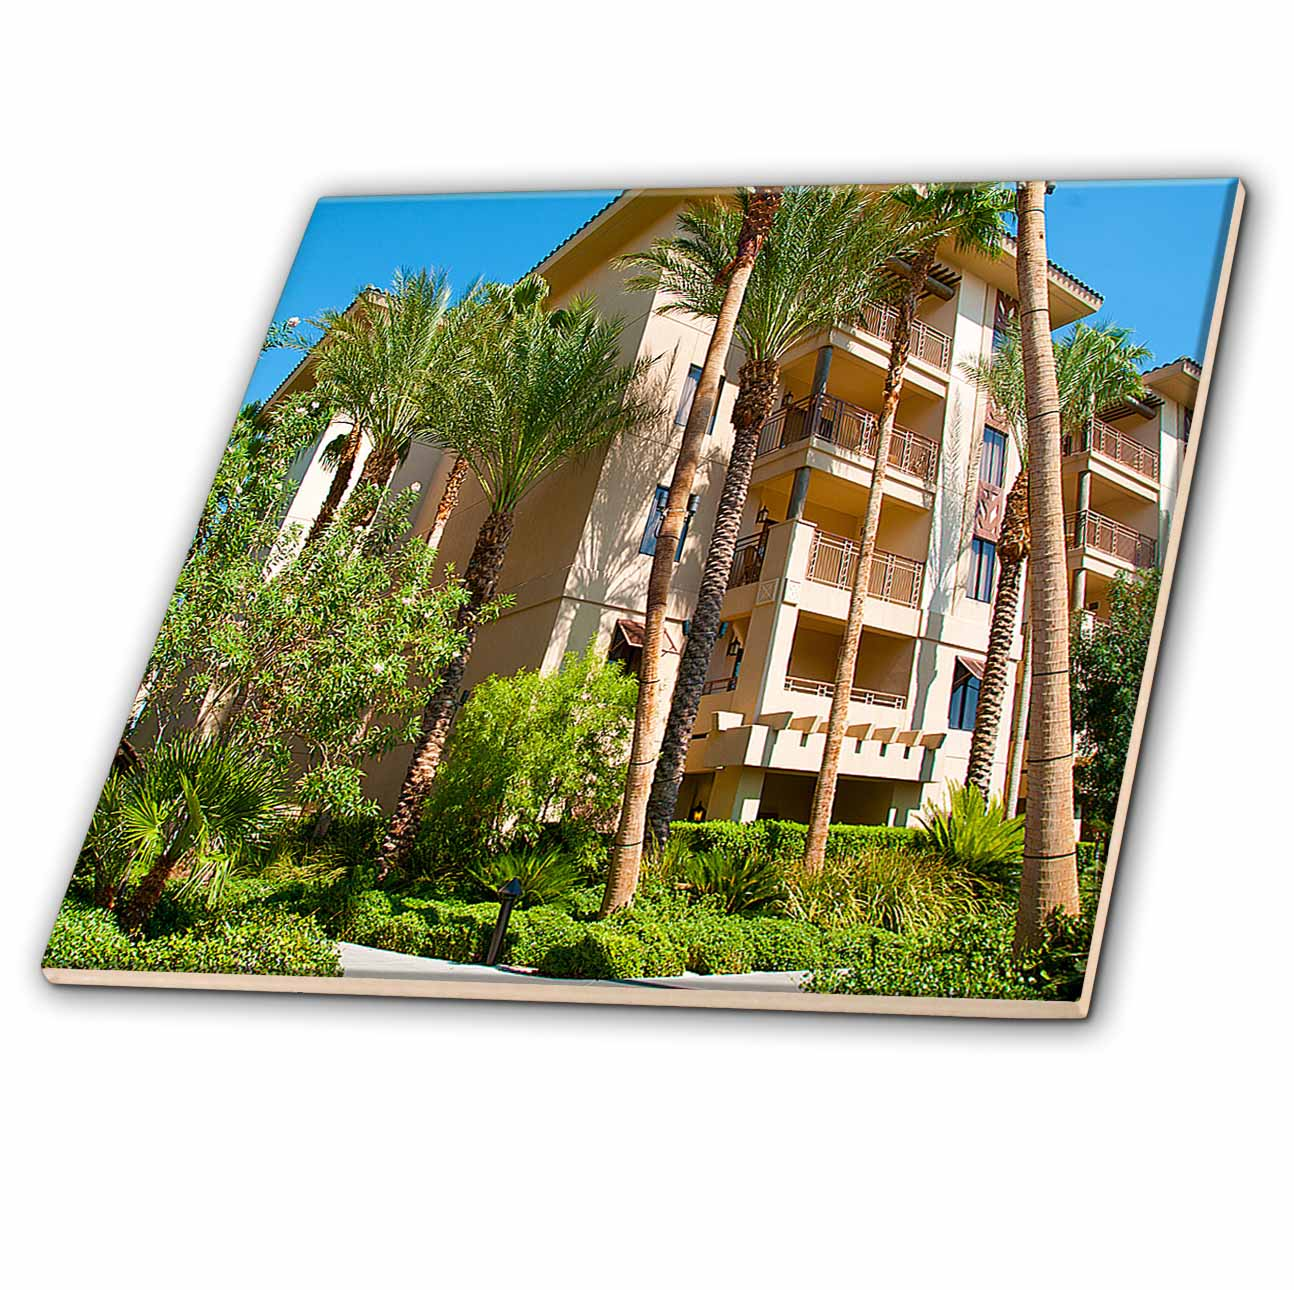 3dRose - Jos Fauxtographee Realistic - View of The Tahiti Village Hotel in Las Vegas, Nevada with its Palm Trees, Green ...